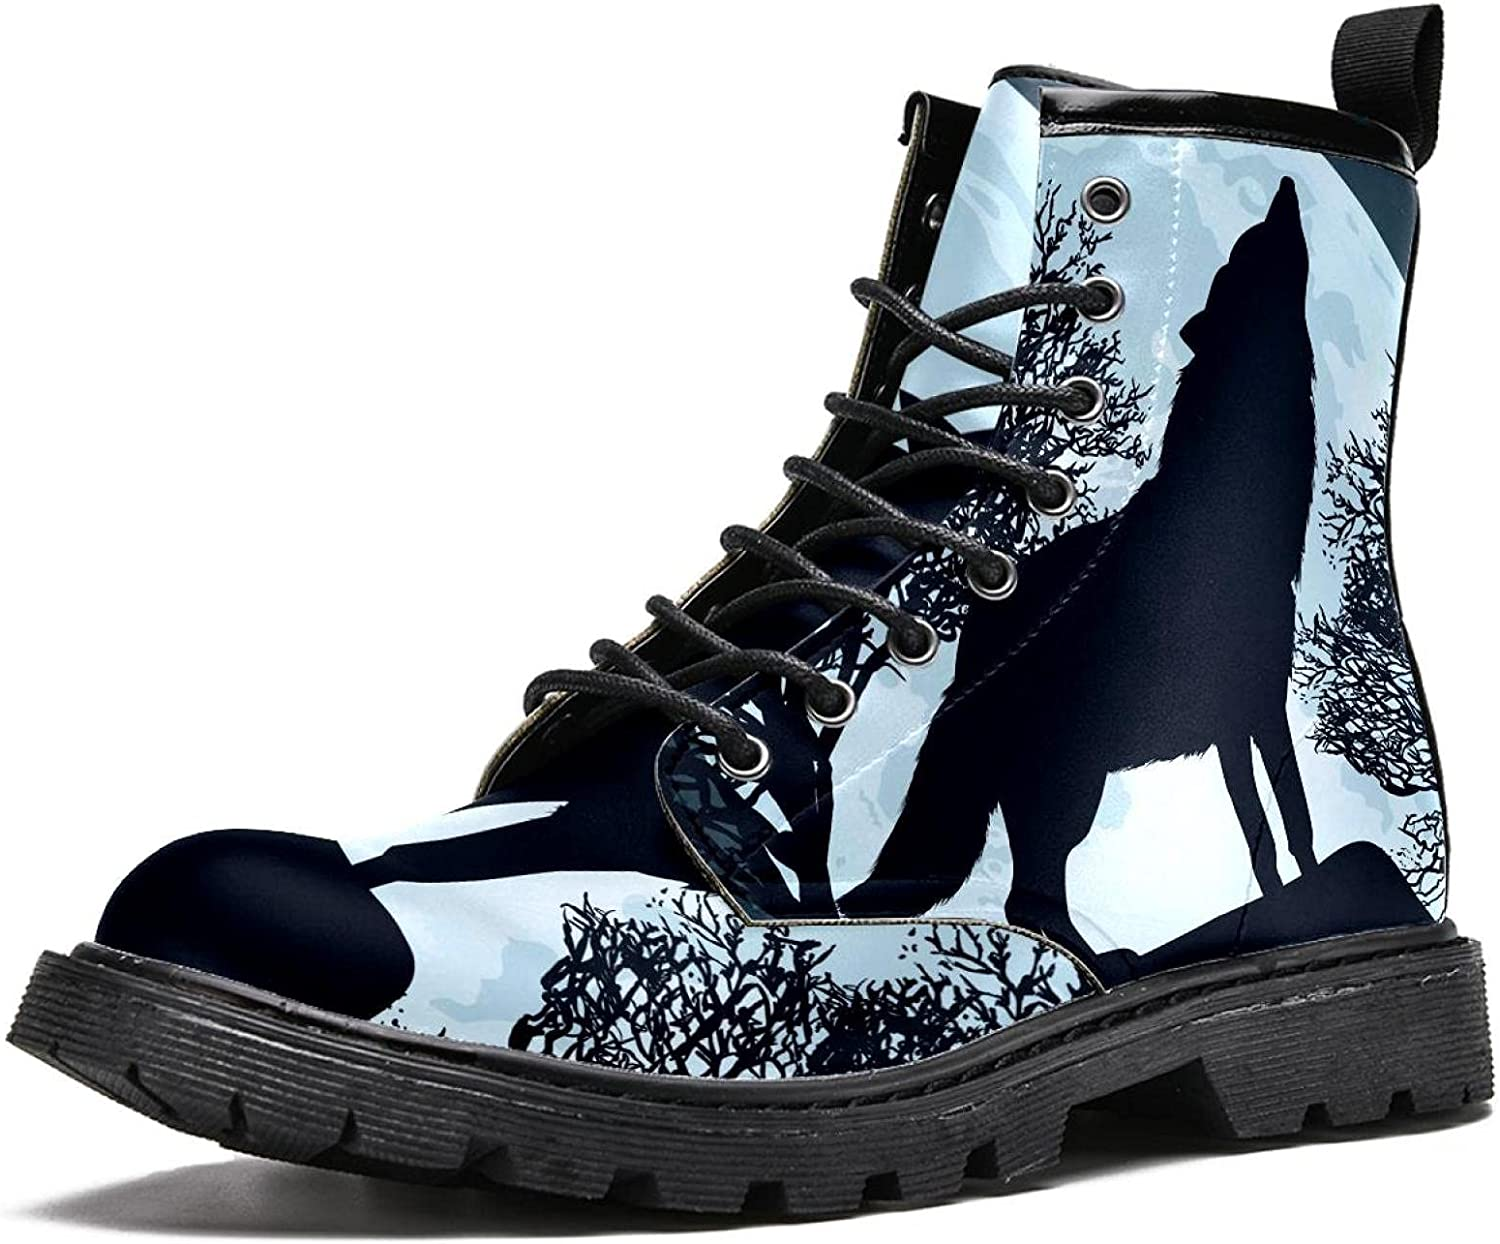 MAPOLO Boots Opening large release sale for Women Wolf Full Challenge the lowest price of Japan ☆ Print Fashion High Moon Women's